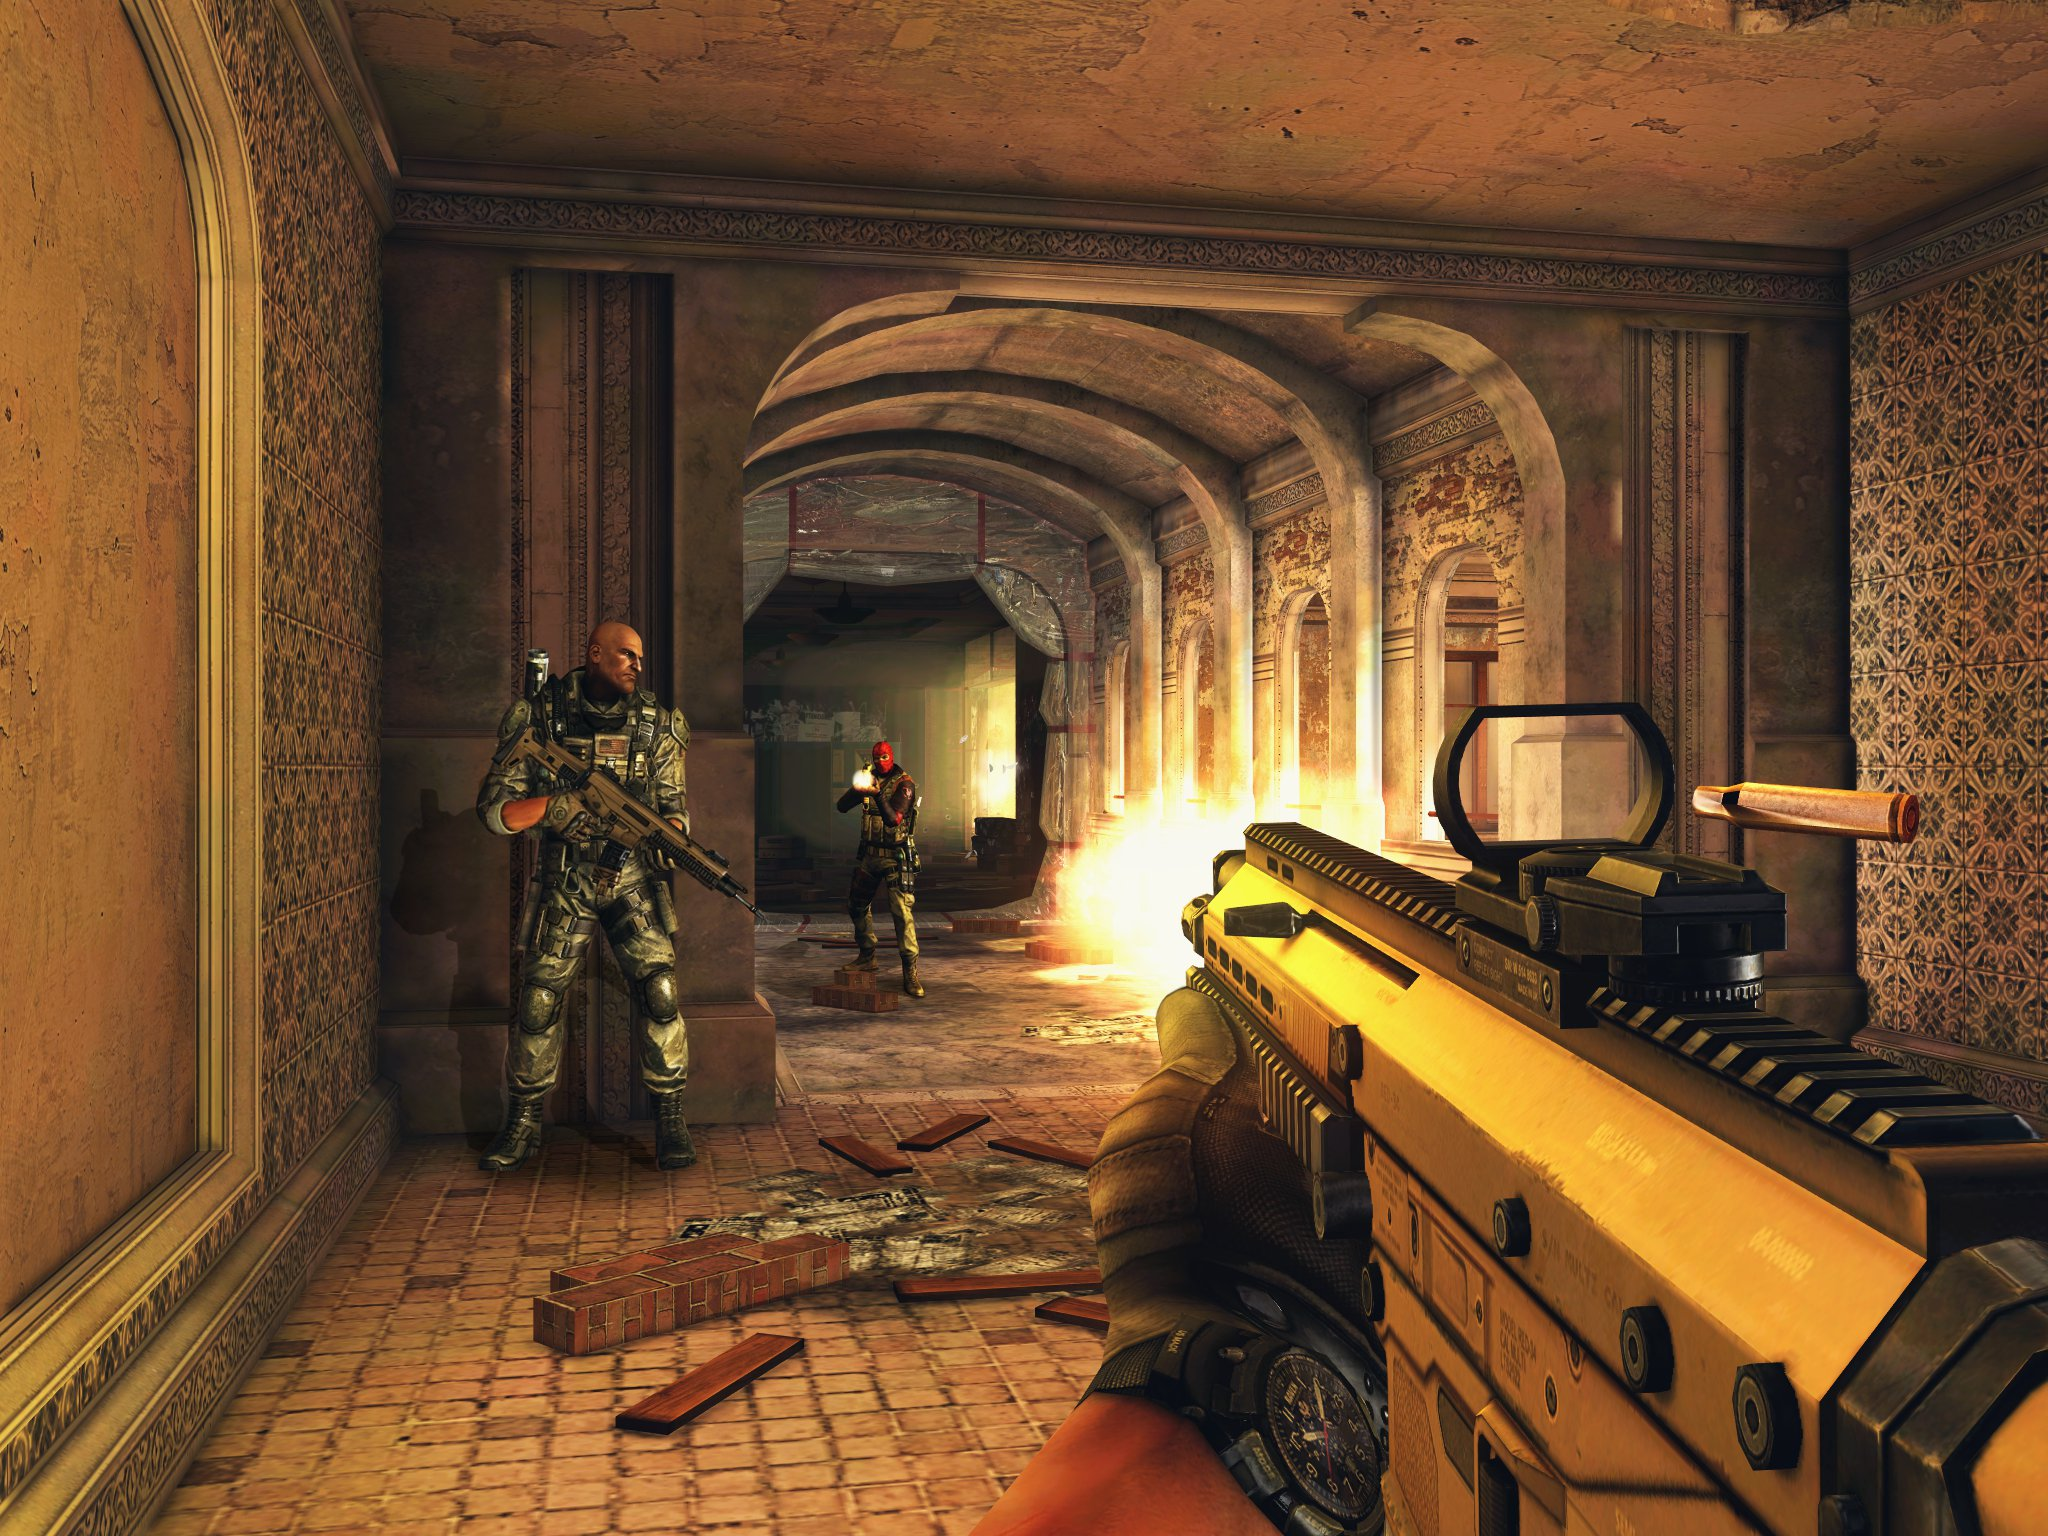 Custom lobbies and map added to Modern Combat 5 in new update